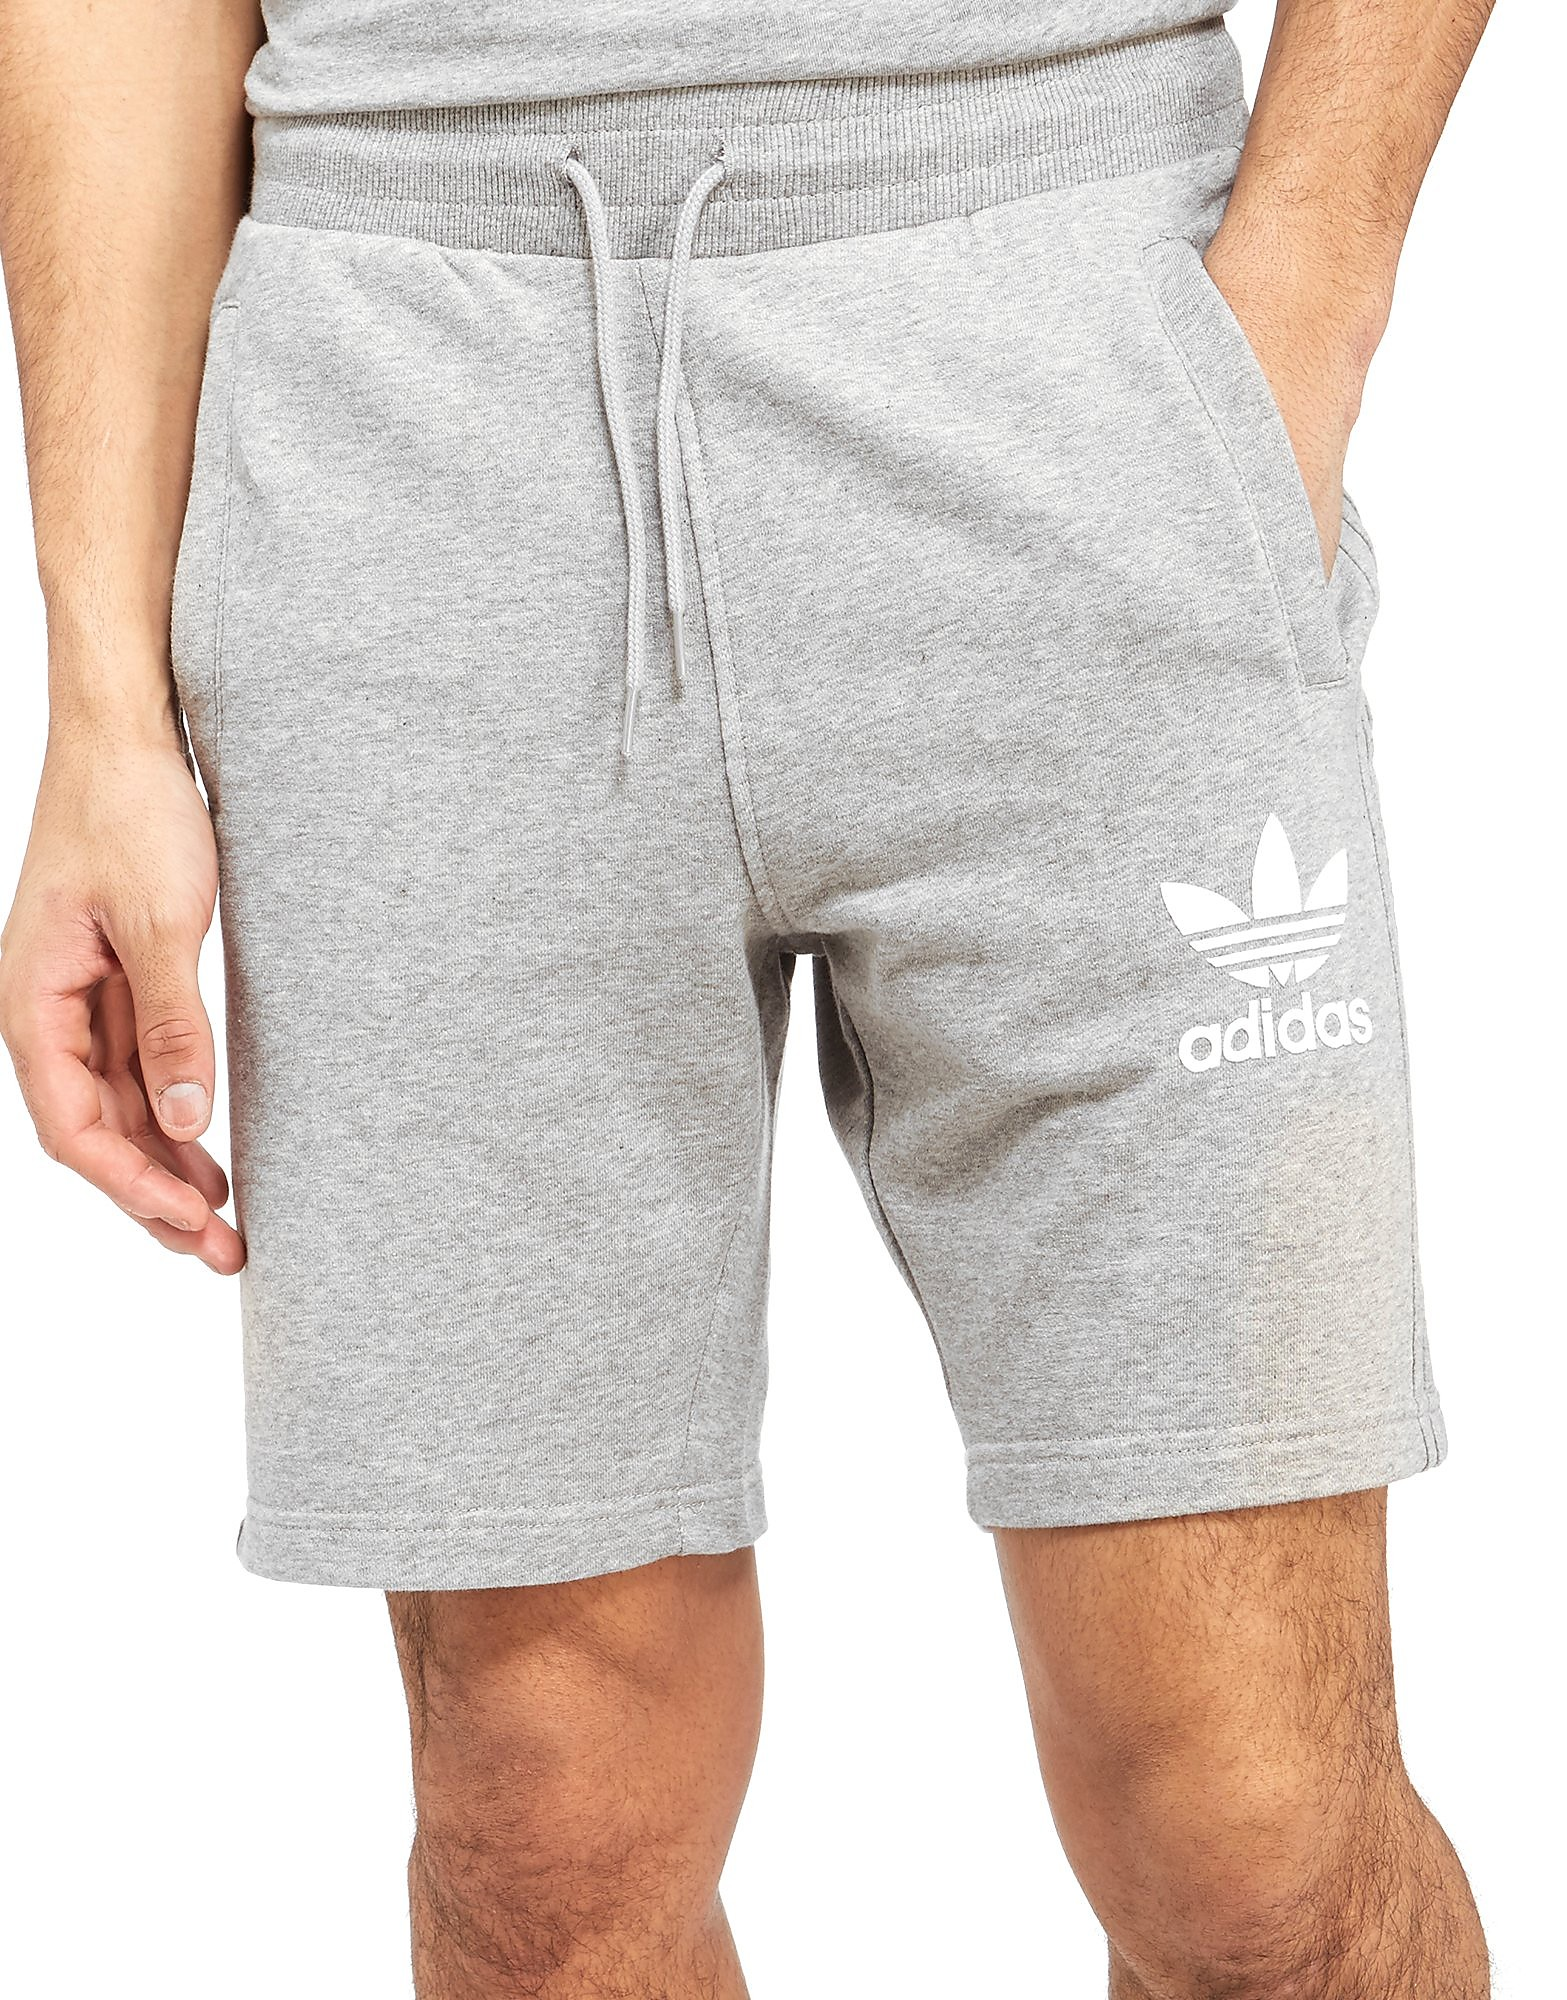 adidas Originals California Shorts